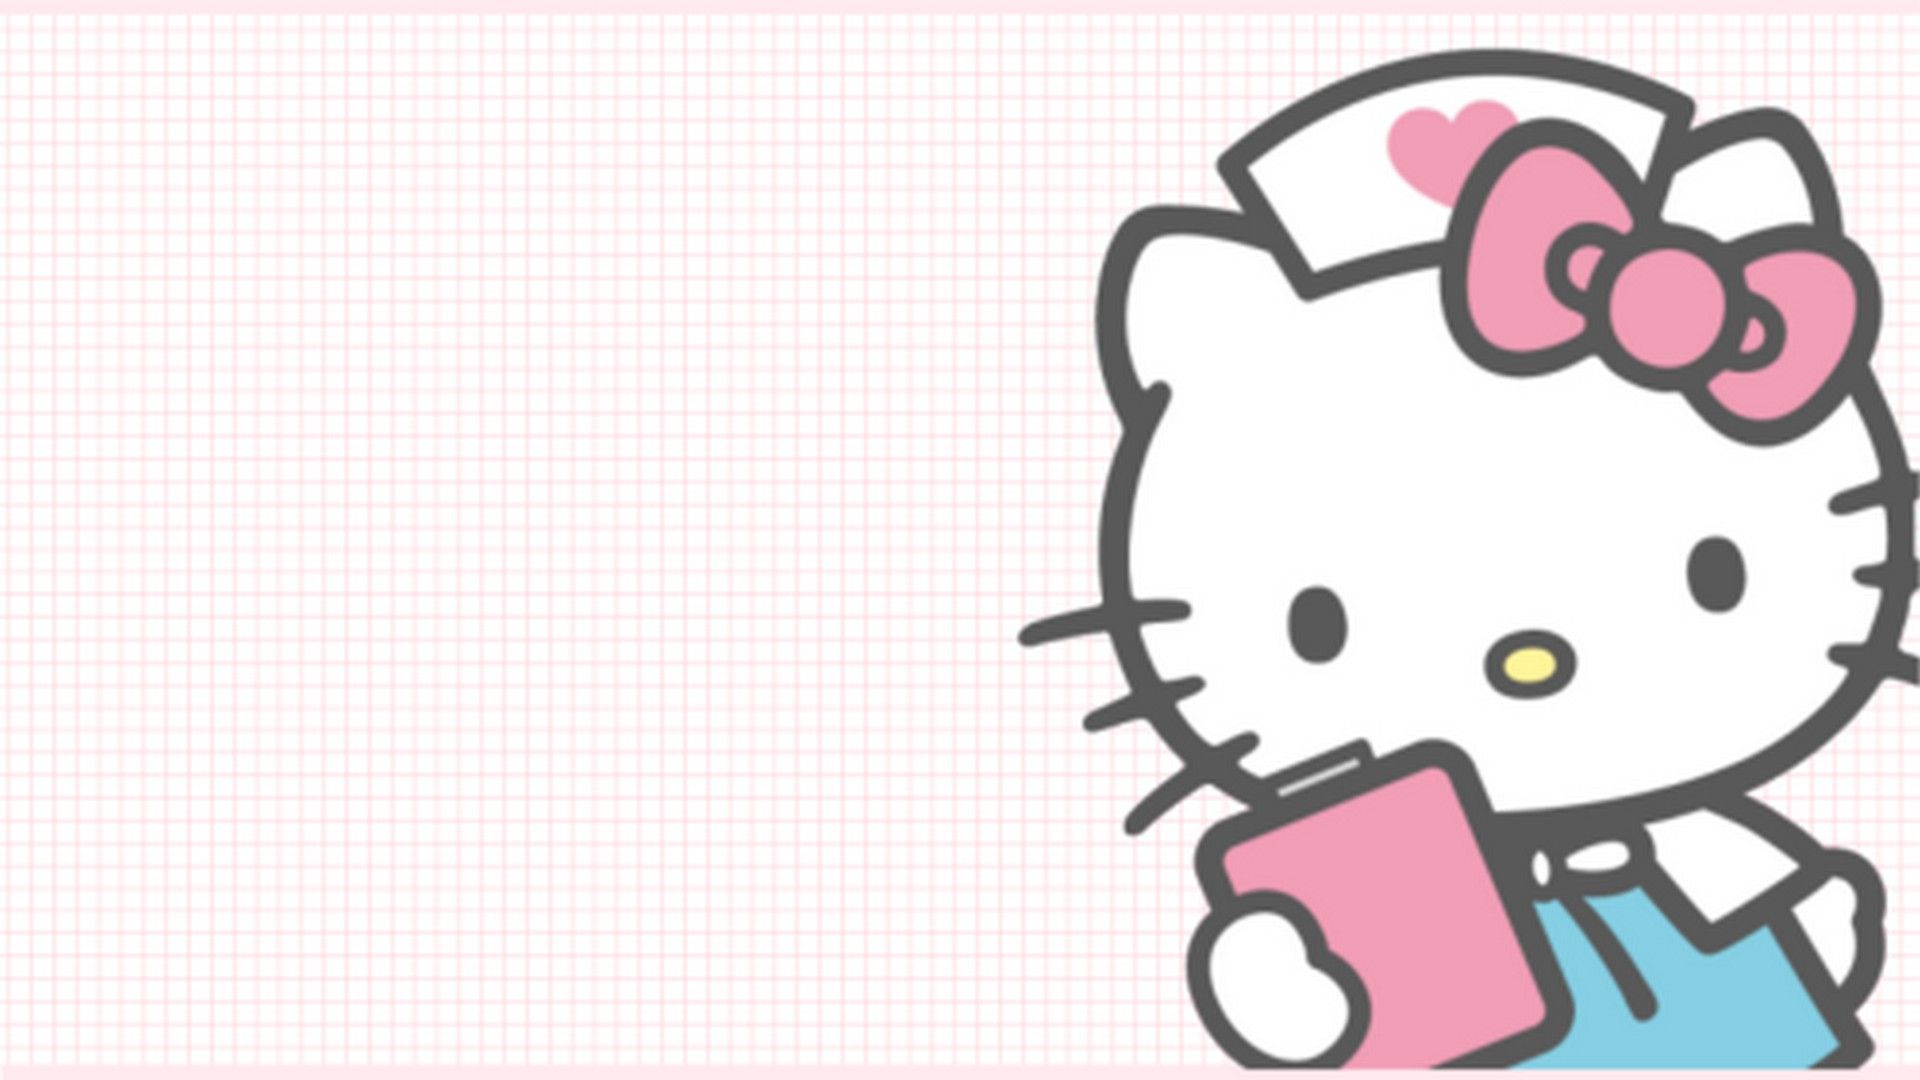 Wallpaper Hello Kitty Characters Desktop Hello Kitty Pictures Hello Kitty Wallpaper Hello Kitty Characters